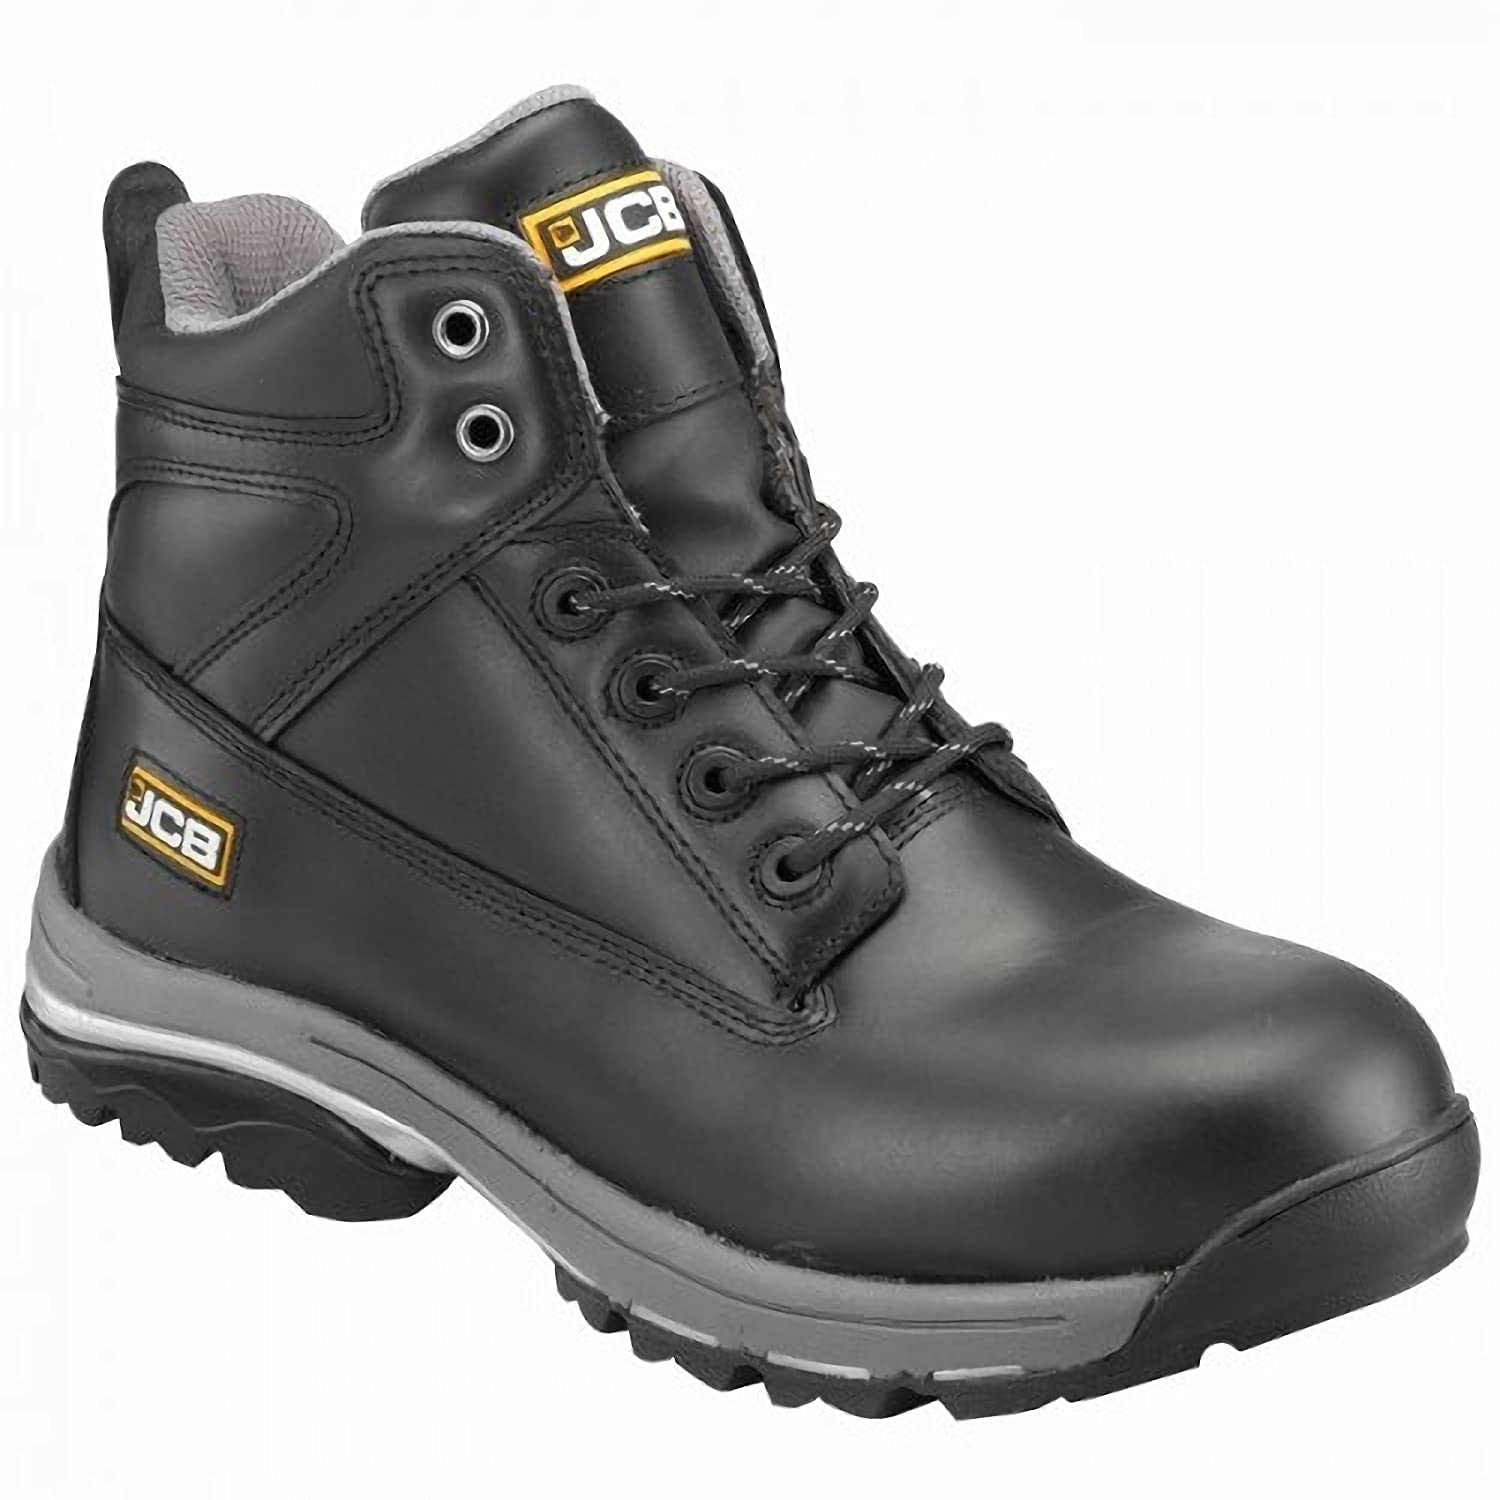 9818035b760 JCB Mens Workmax Steel Toe Boots